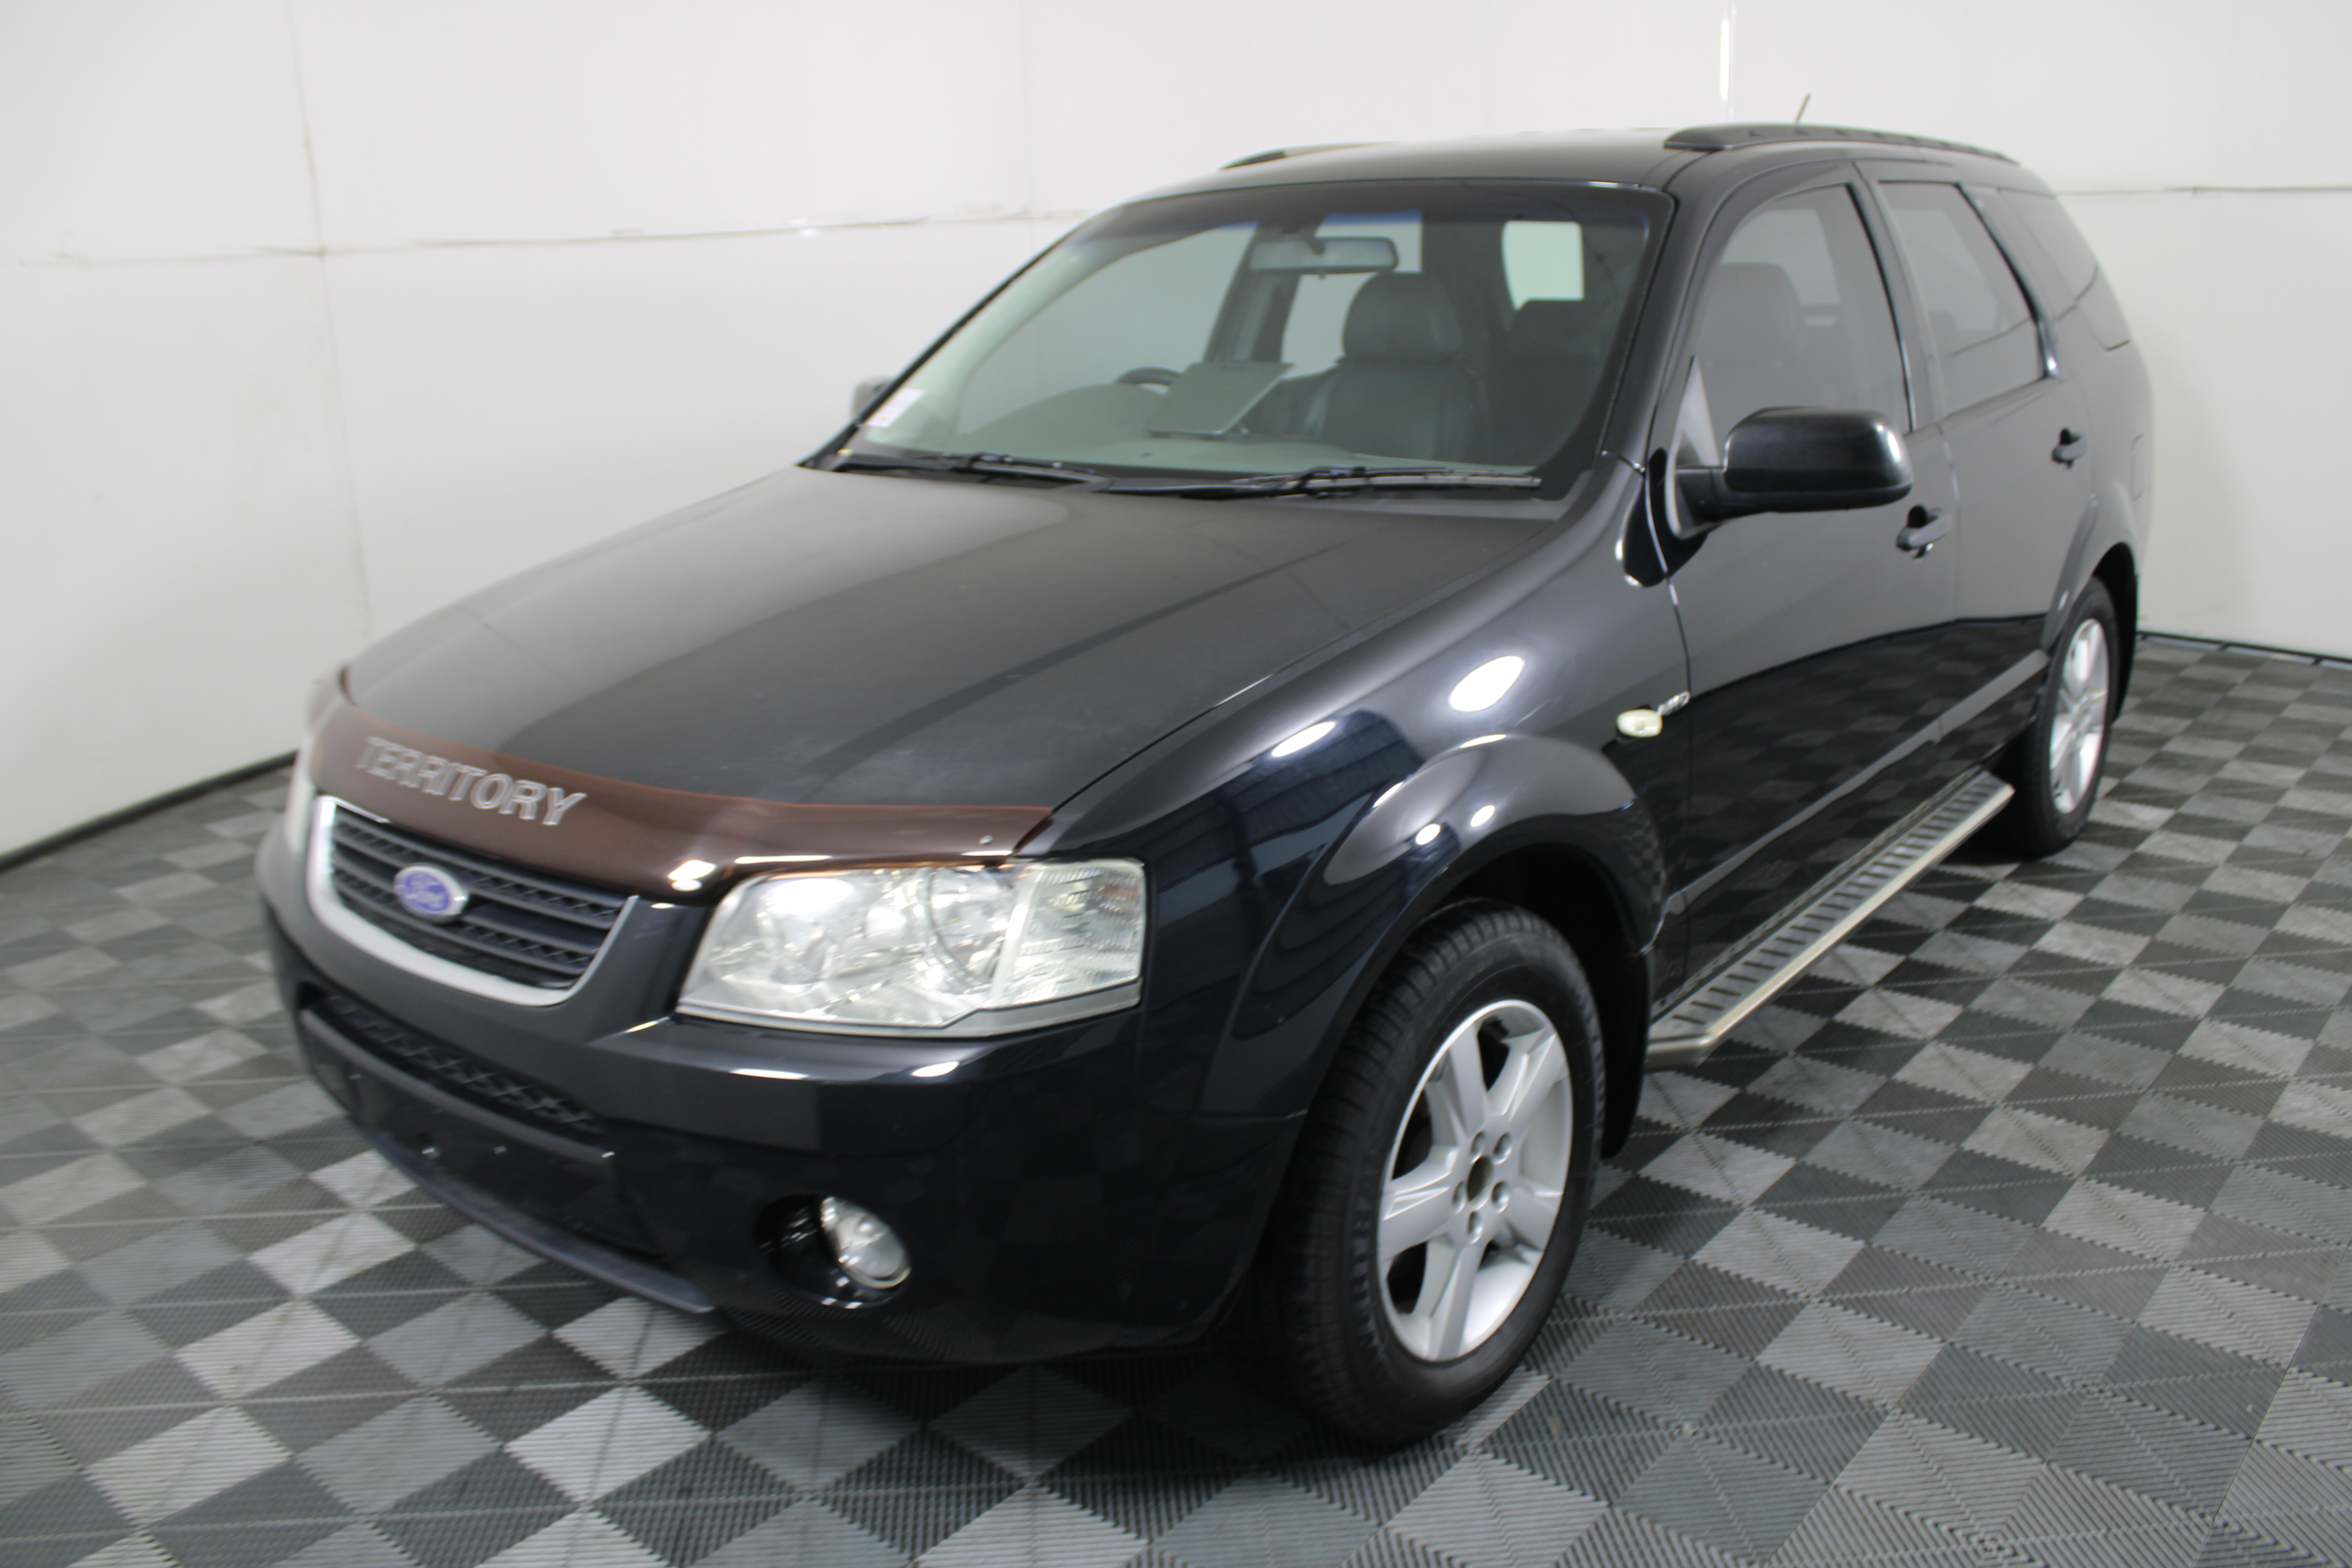 2007 Ford Territory SR (4x4) SY Automatic 6 Speed Auto Wagon